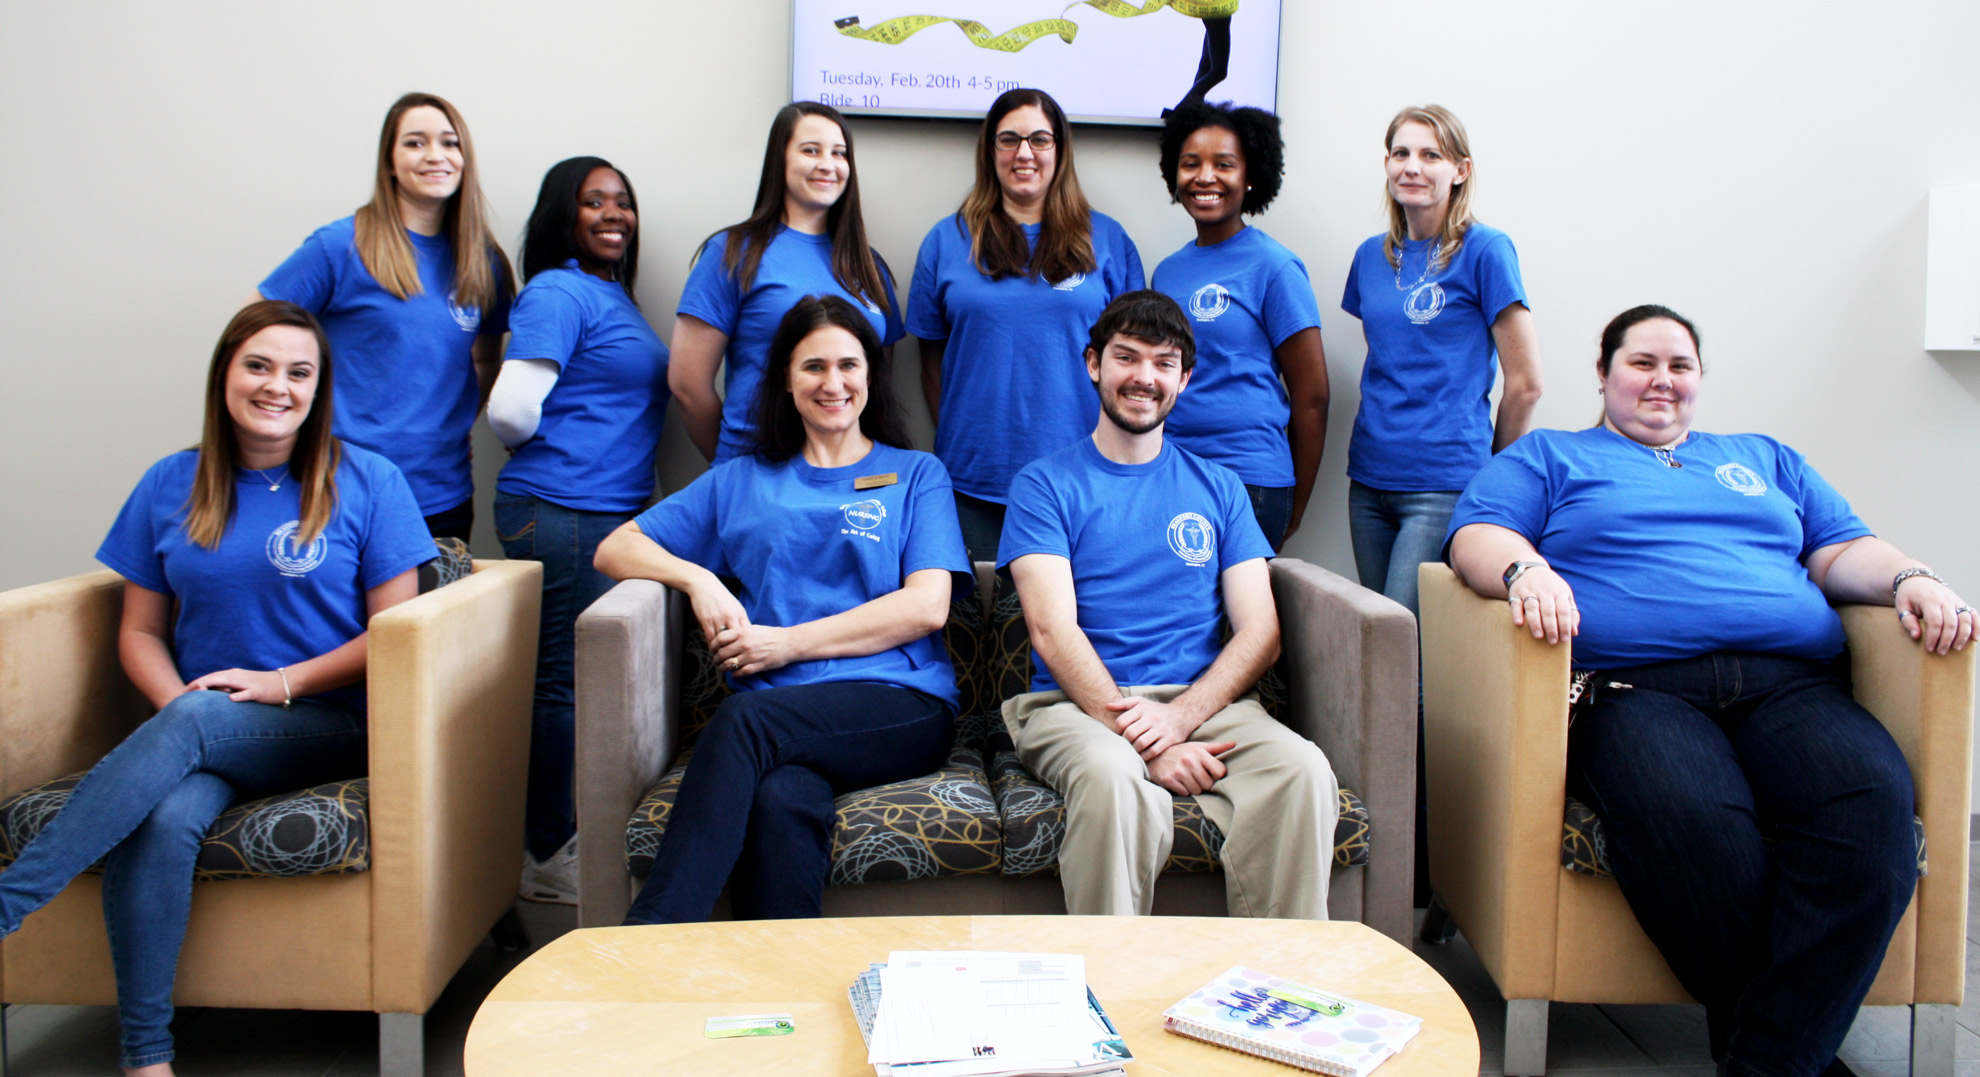 Ten students in blue t-shirts in two rows. Front row (left to right): Makayla Cutler, VP; Angela Boyd, Faculty Advisor; James Matthews, President; and Jessie Godley, Social Event Coordinator. Back row (left to right): Logan Barber, Historian; India Allen, LPN Rep; Brittany Wiggins, Historian; Kristen Battershell, Secretary; Michelle Ashe, Treasurer; and Daniell Davenport, Social Event Coordinator.  Not pictured: Morgan Peed, LPN representative.